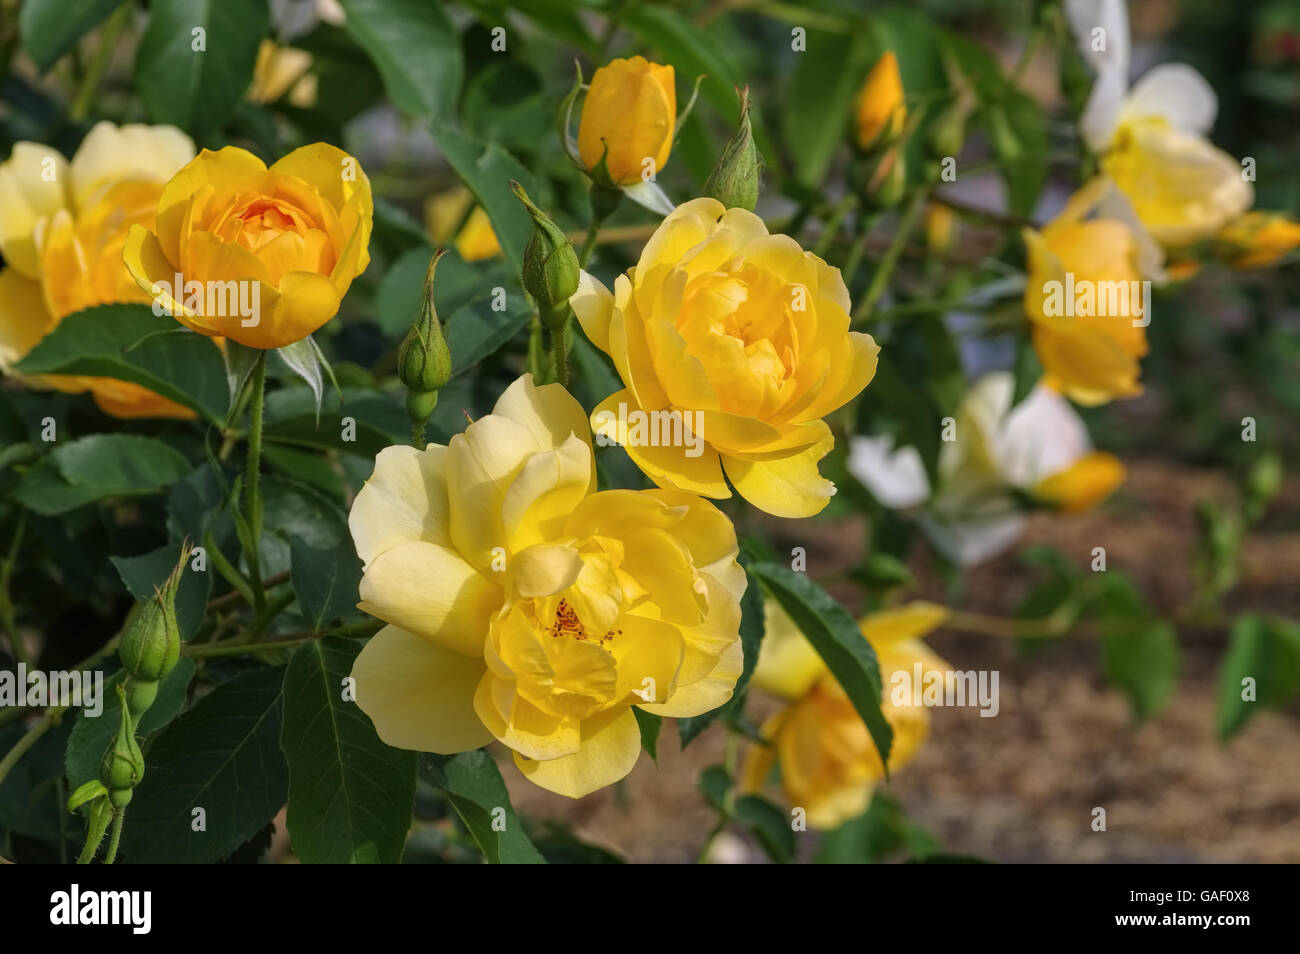 Englische Ros der Sorte Buttercup - yellow English Rose, called Buttercup - Stock Image